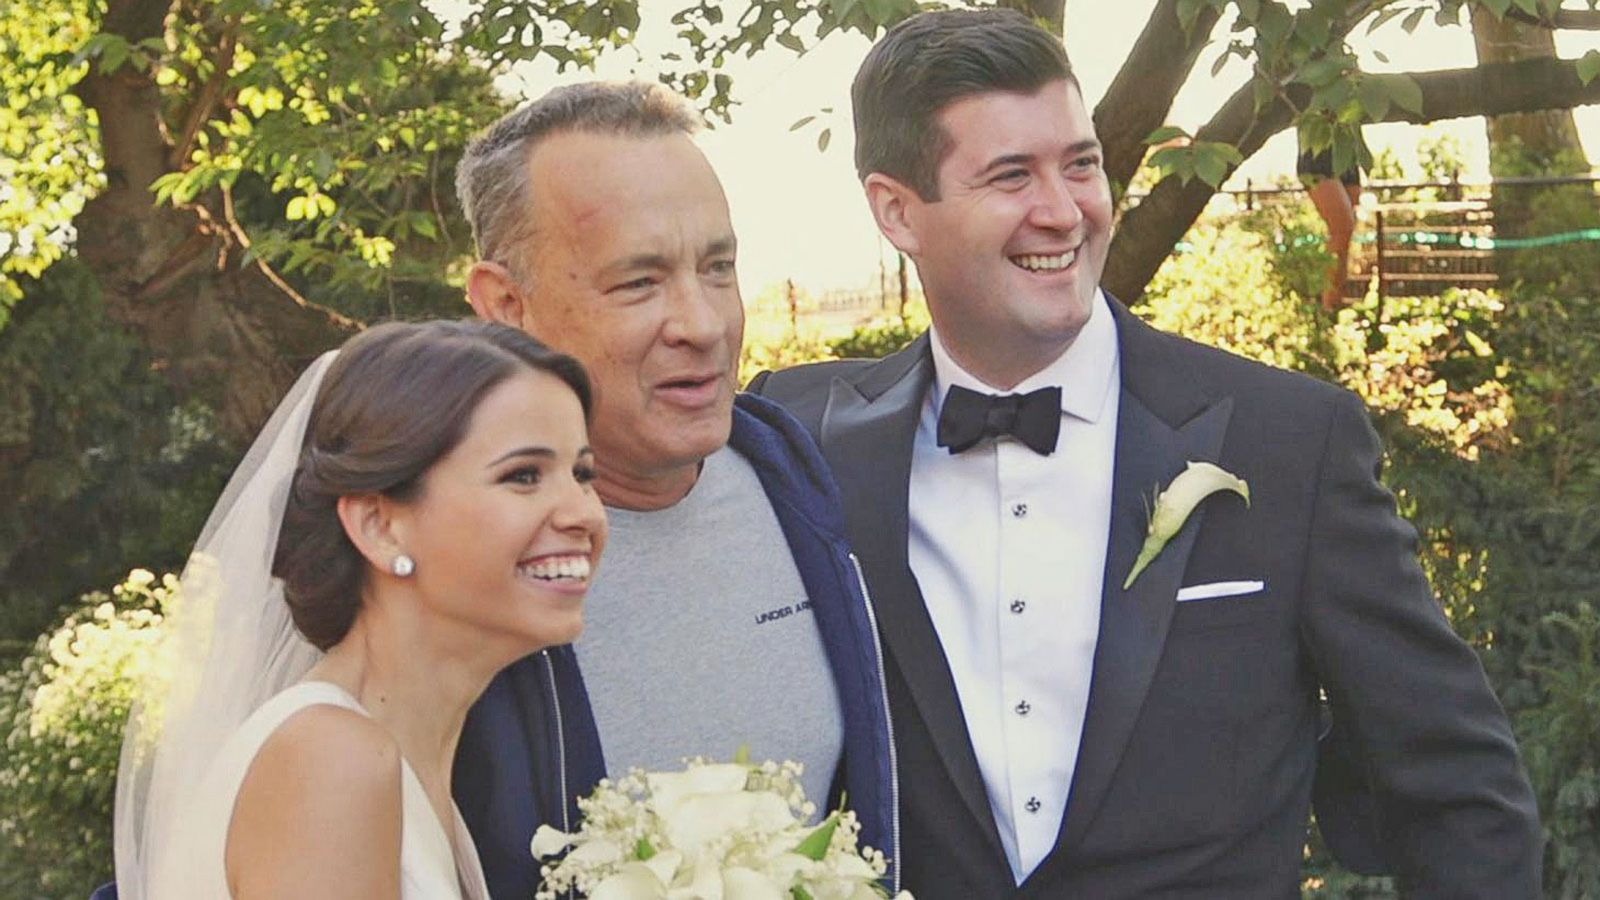 VIDEO: Tom Hanks Photobombs Wedding Shoot in NYC